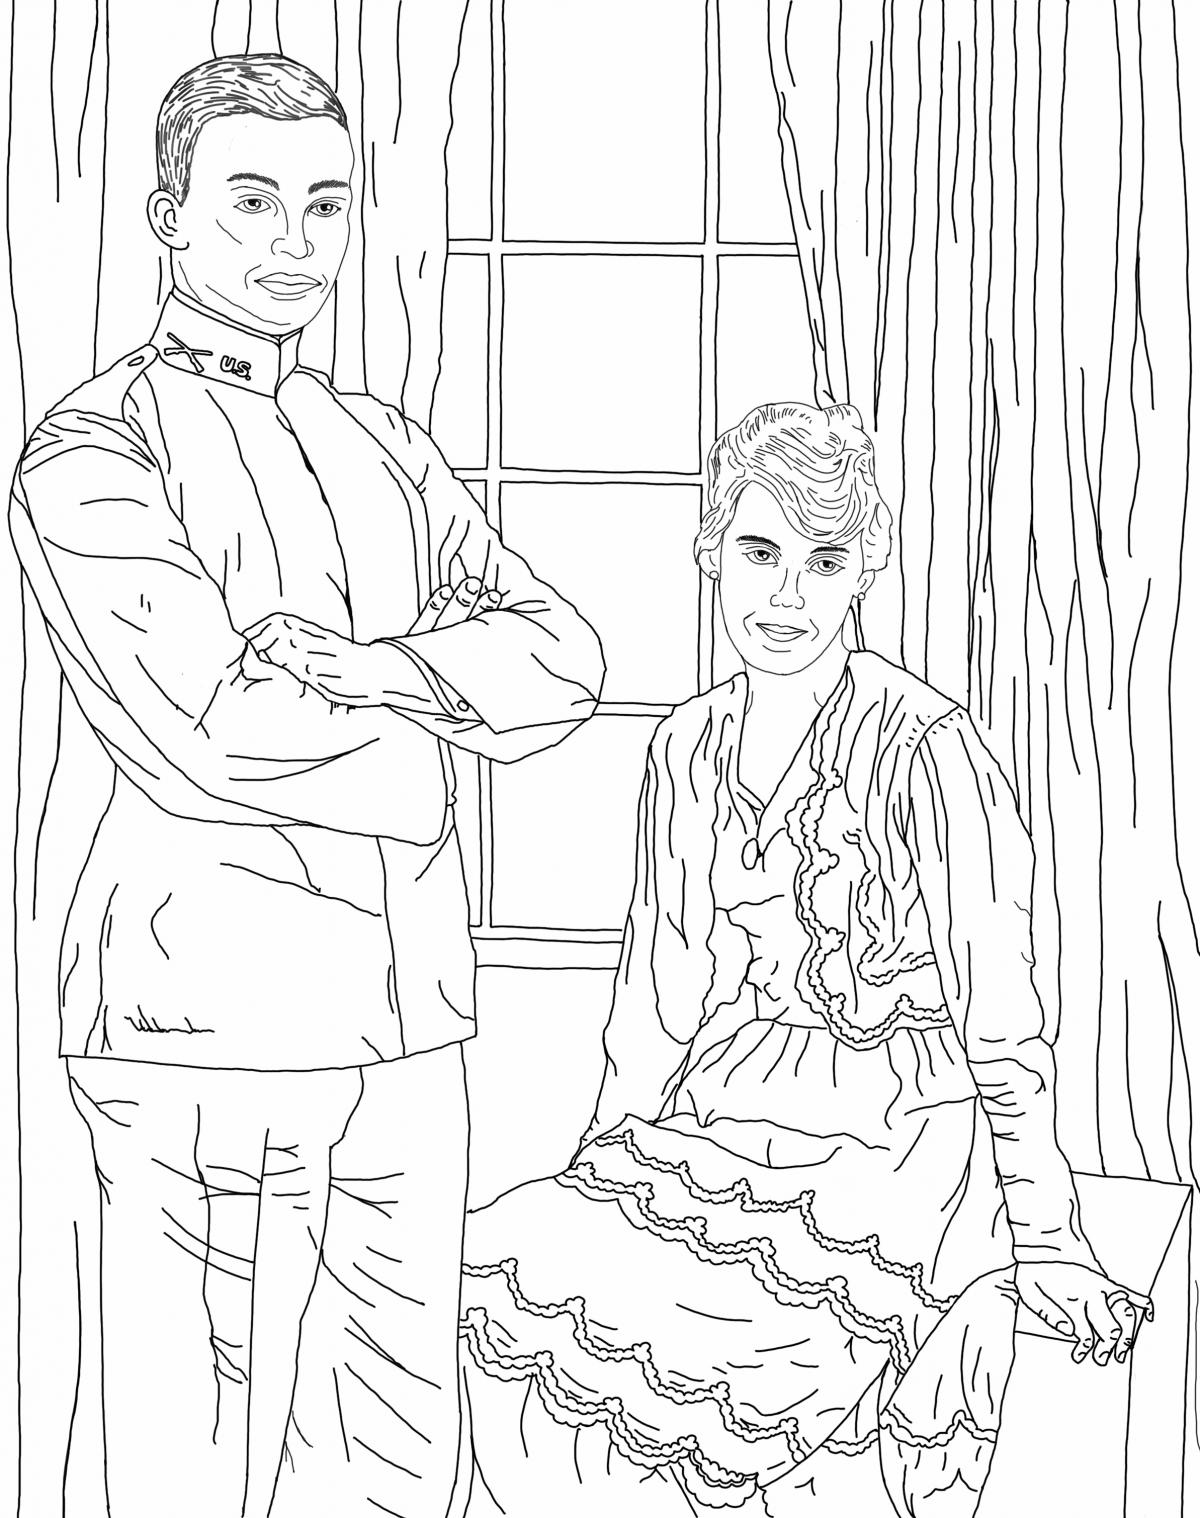 Dwight and Mamie Wedding Photo - coloring page JPG